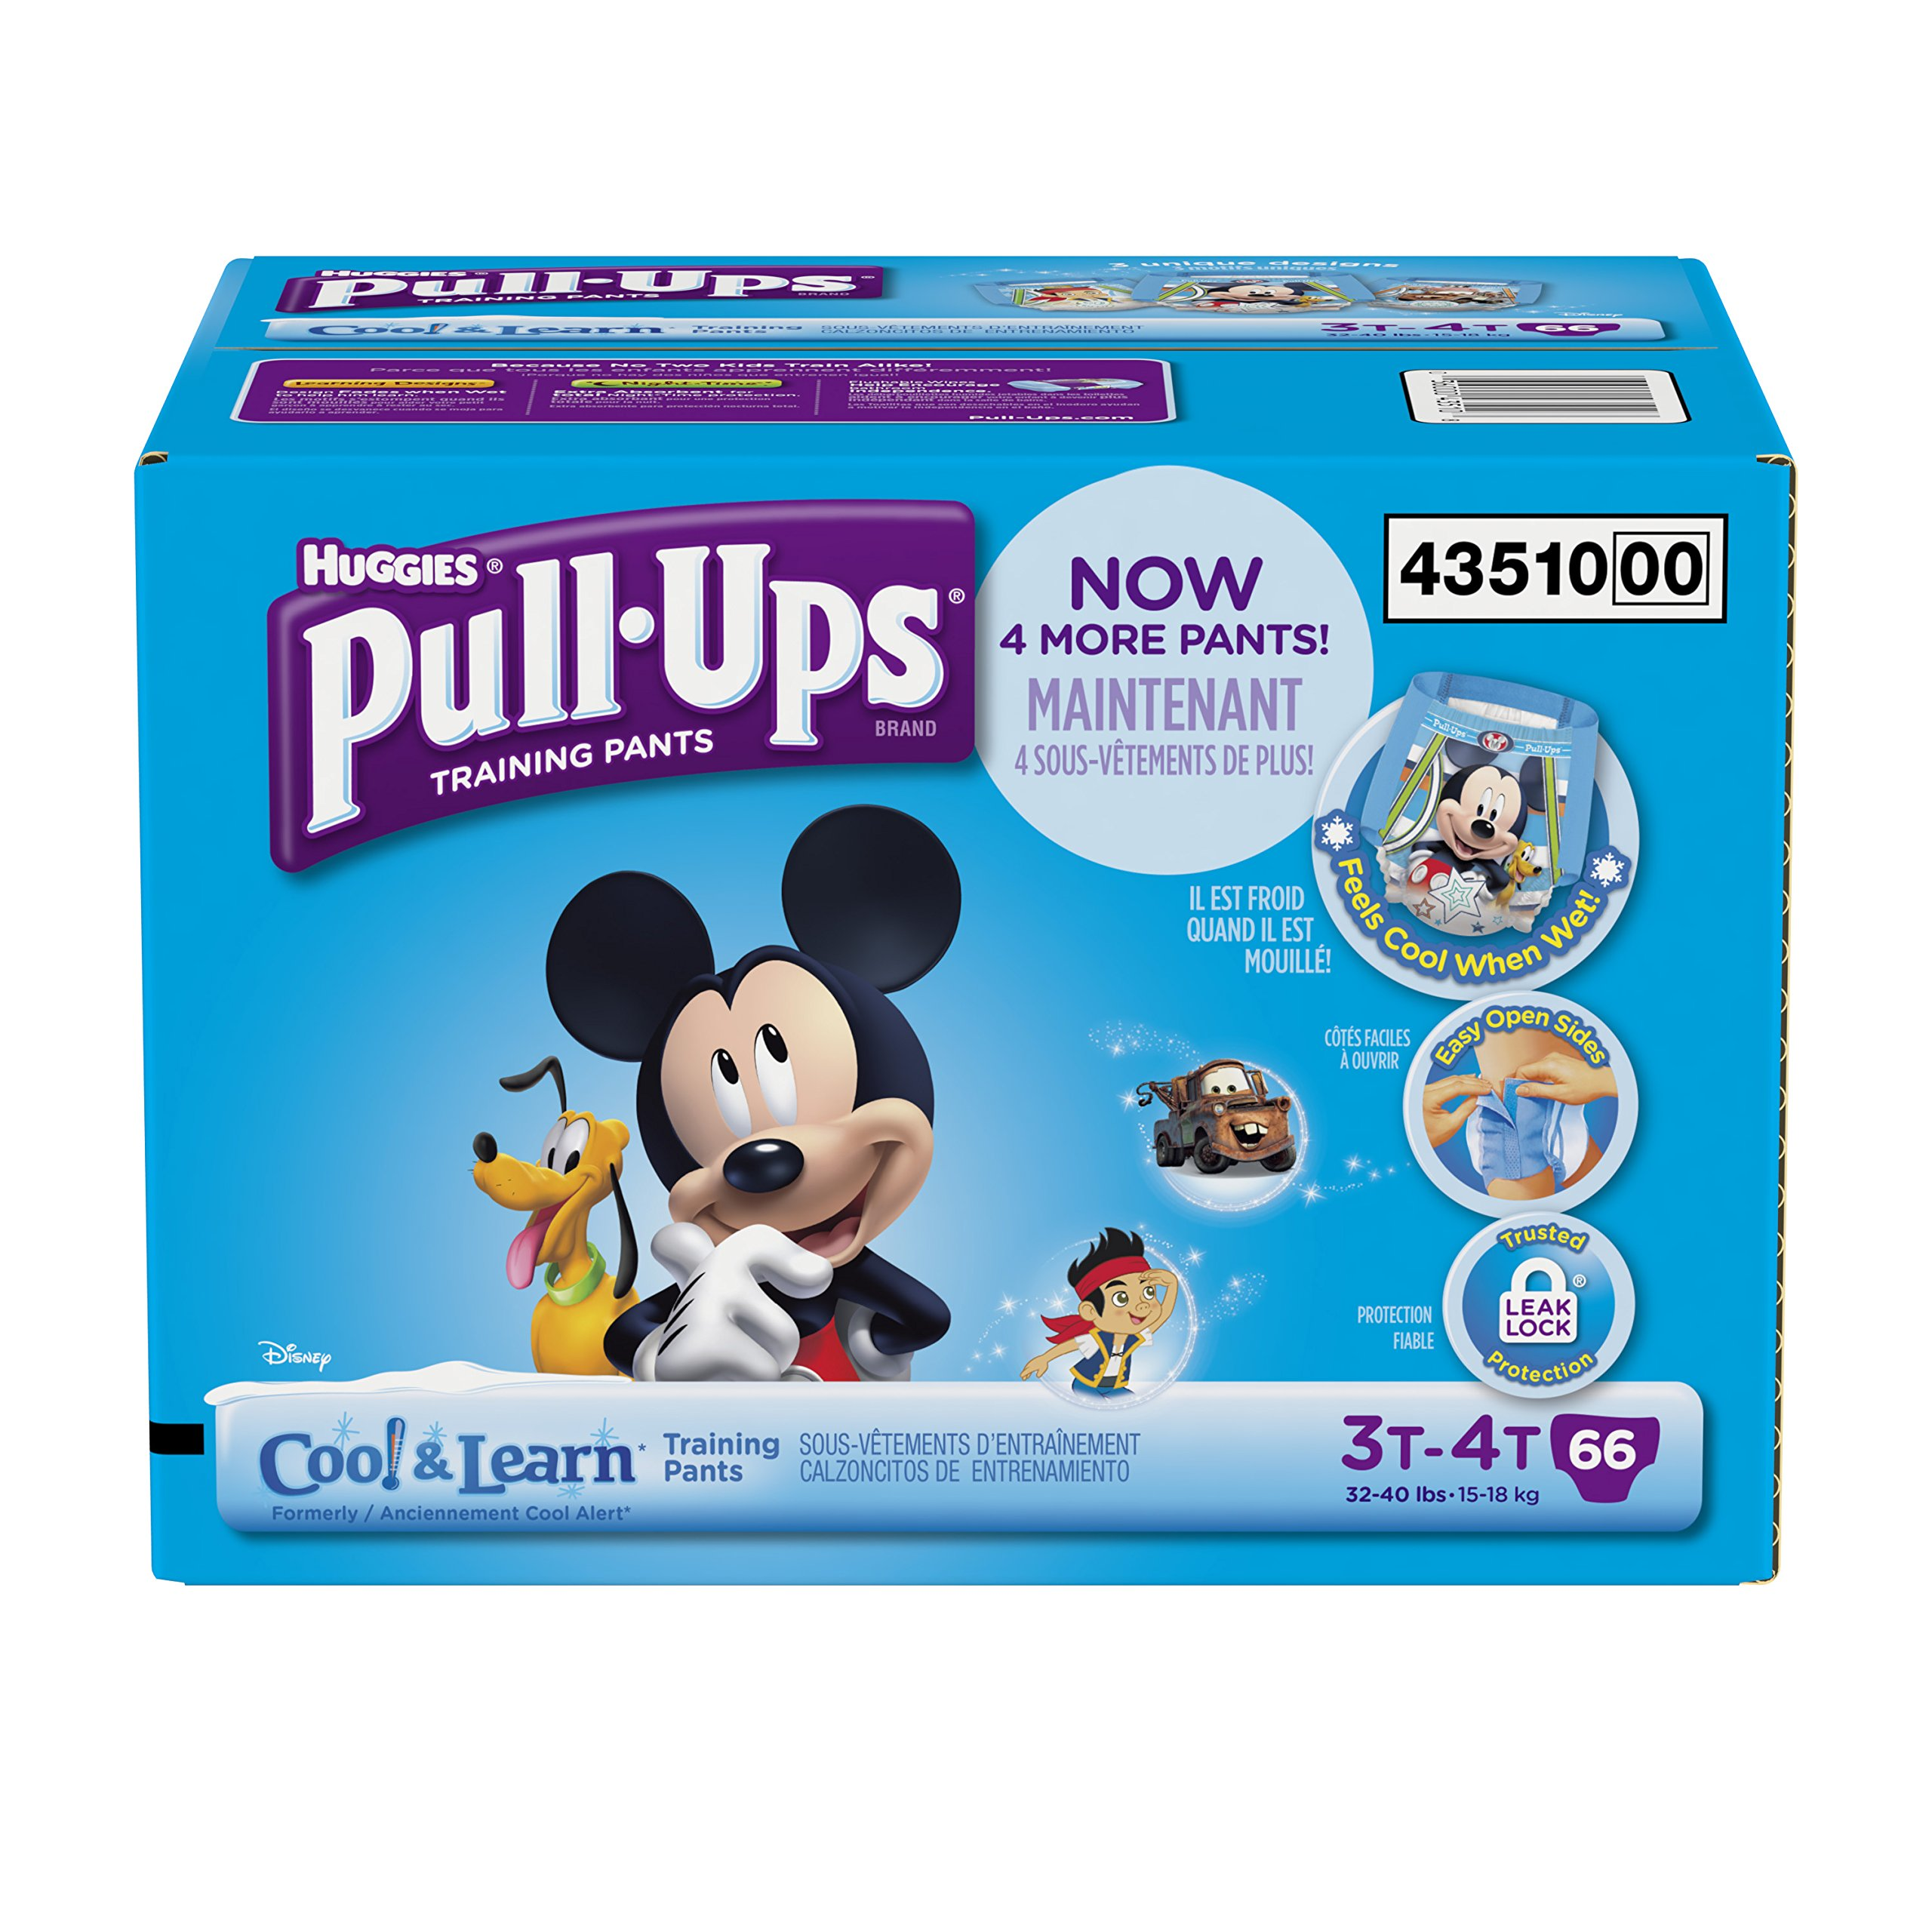 Huggies Pull-Ups Training Pants with Cool and Learn for Boys, Size 3T-4T, 66 Count